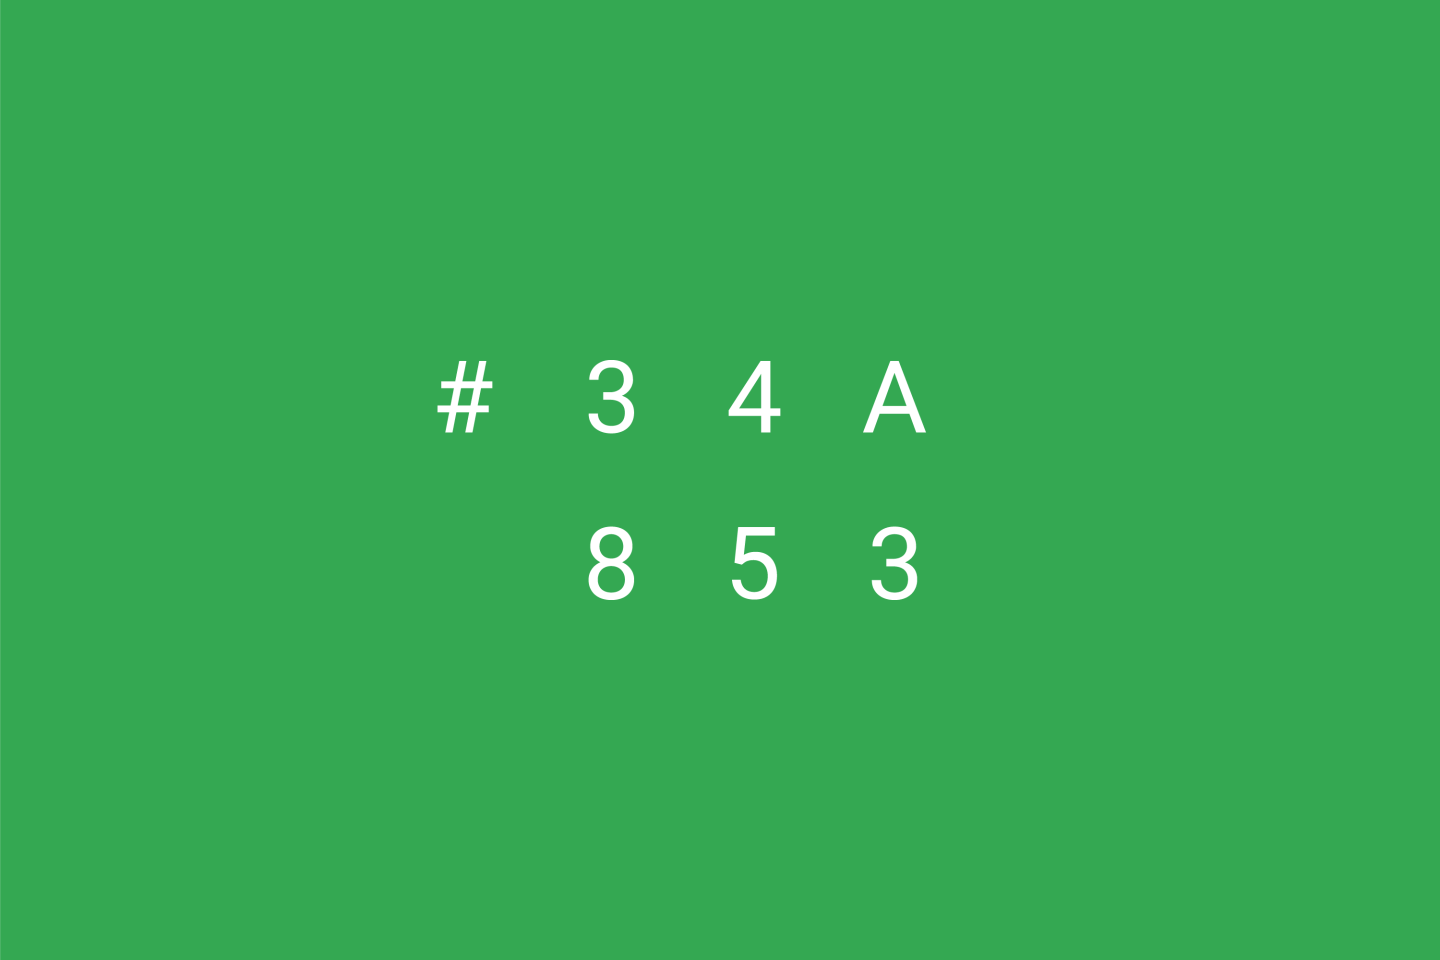 Google Brand Colors - Green